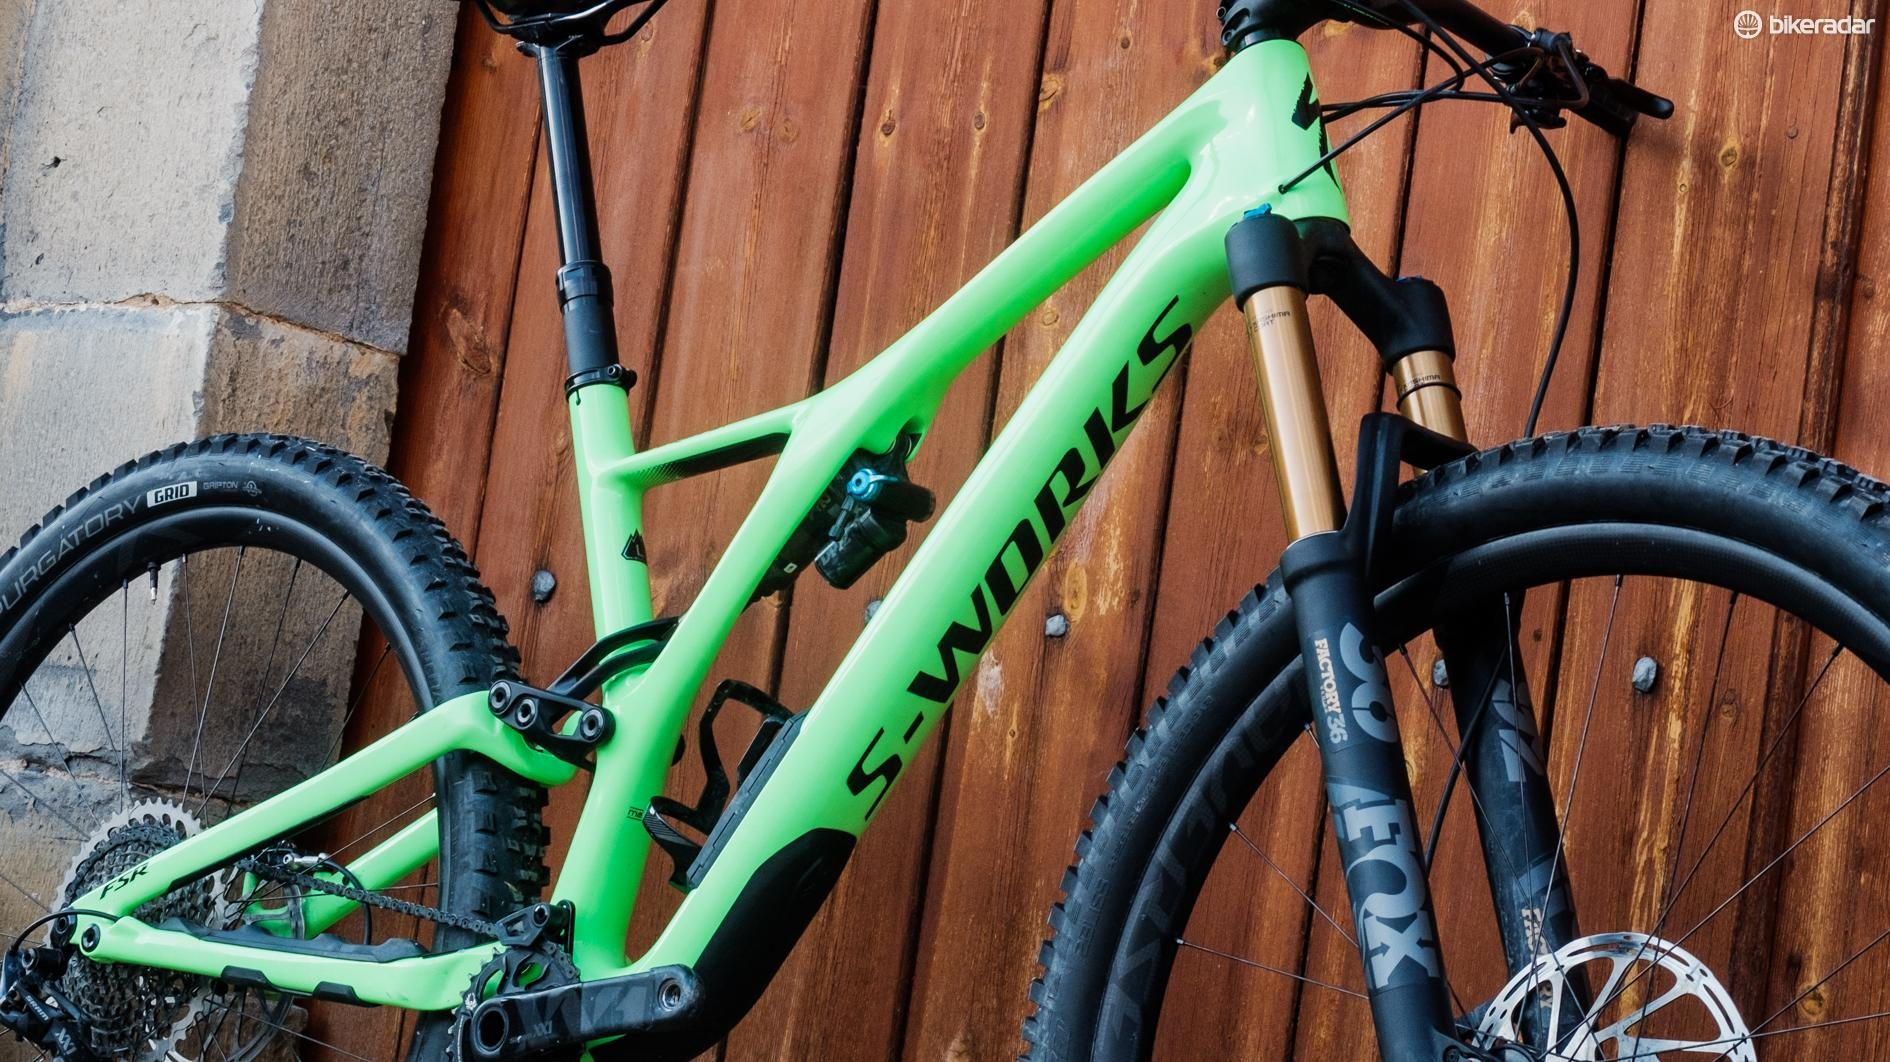 Specialized Stump Jumper New Design Large Set Decals//Stickers Gloss Black